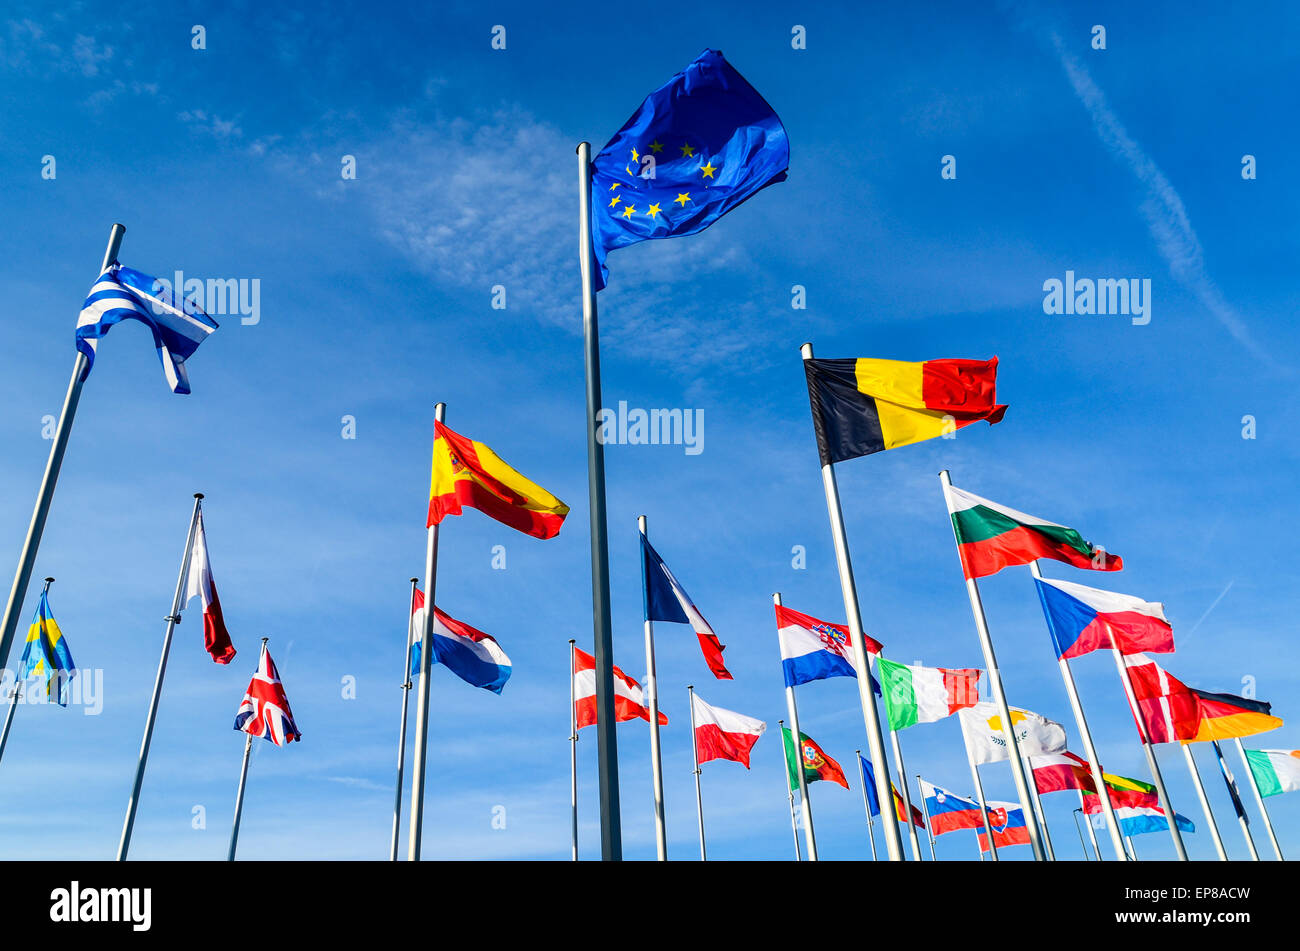 European union flag and flags of the European Union countries at the European Commission, European Quarter, Luxembourg - Stock Image